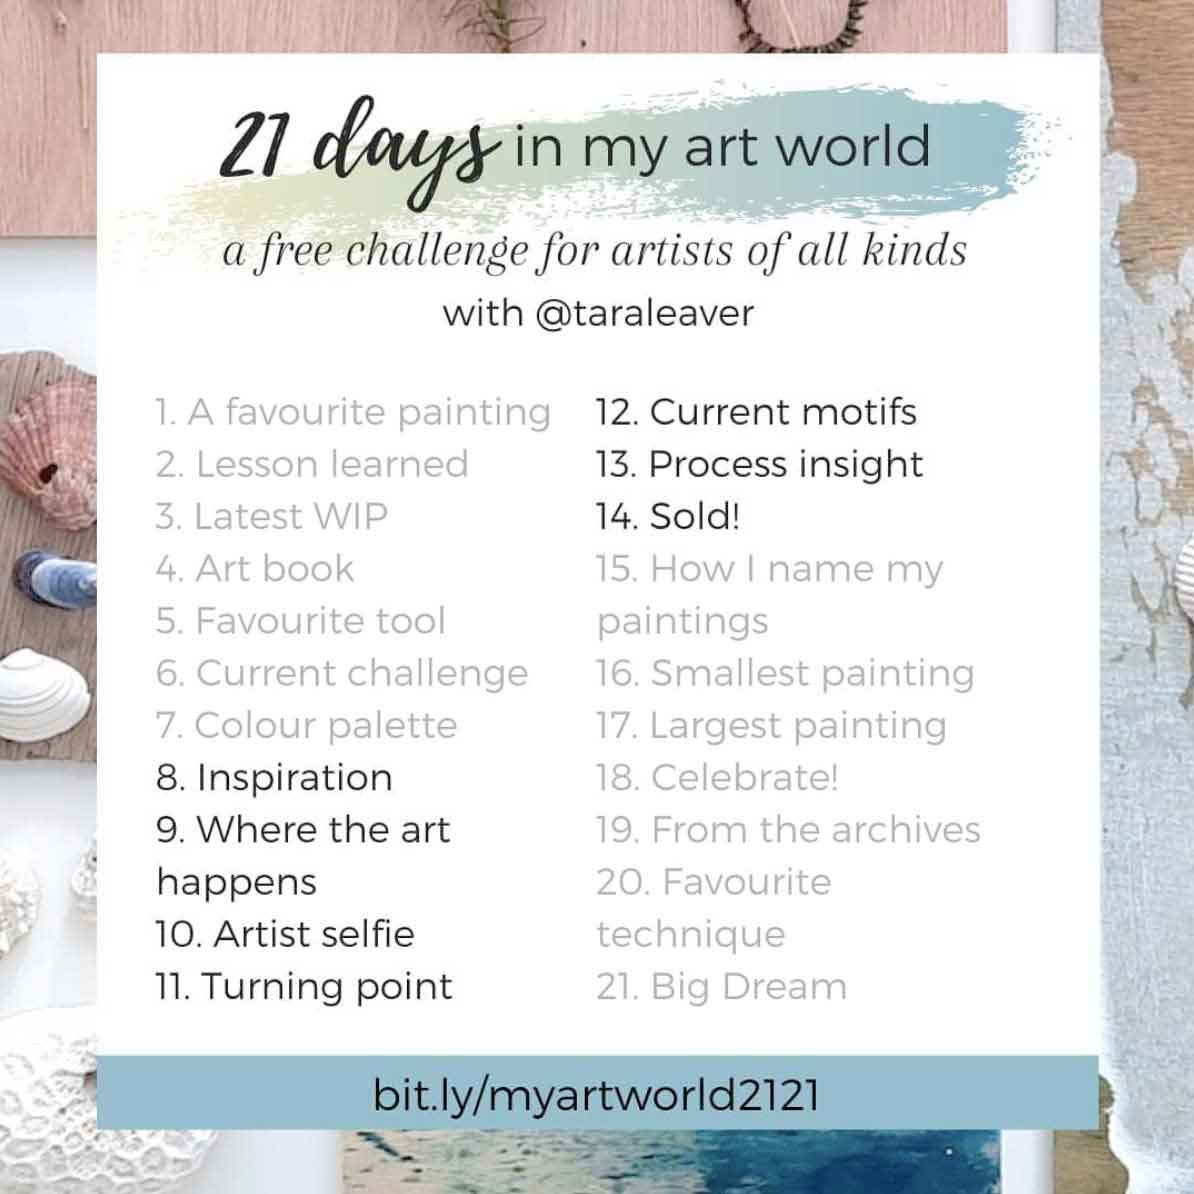 21 days in my art world – 2021, Week 2 - Days 8-14